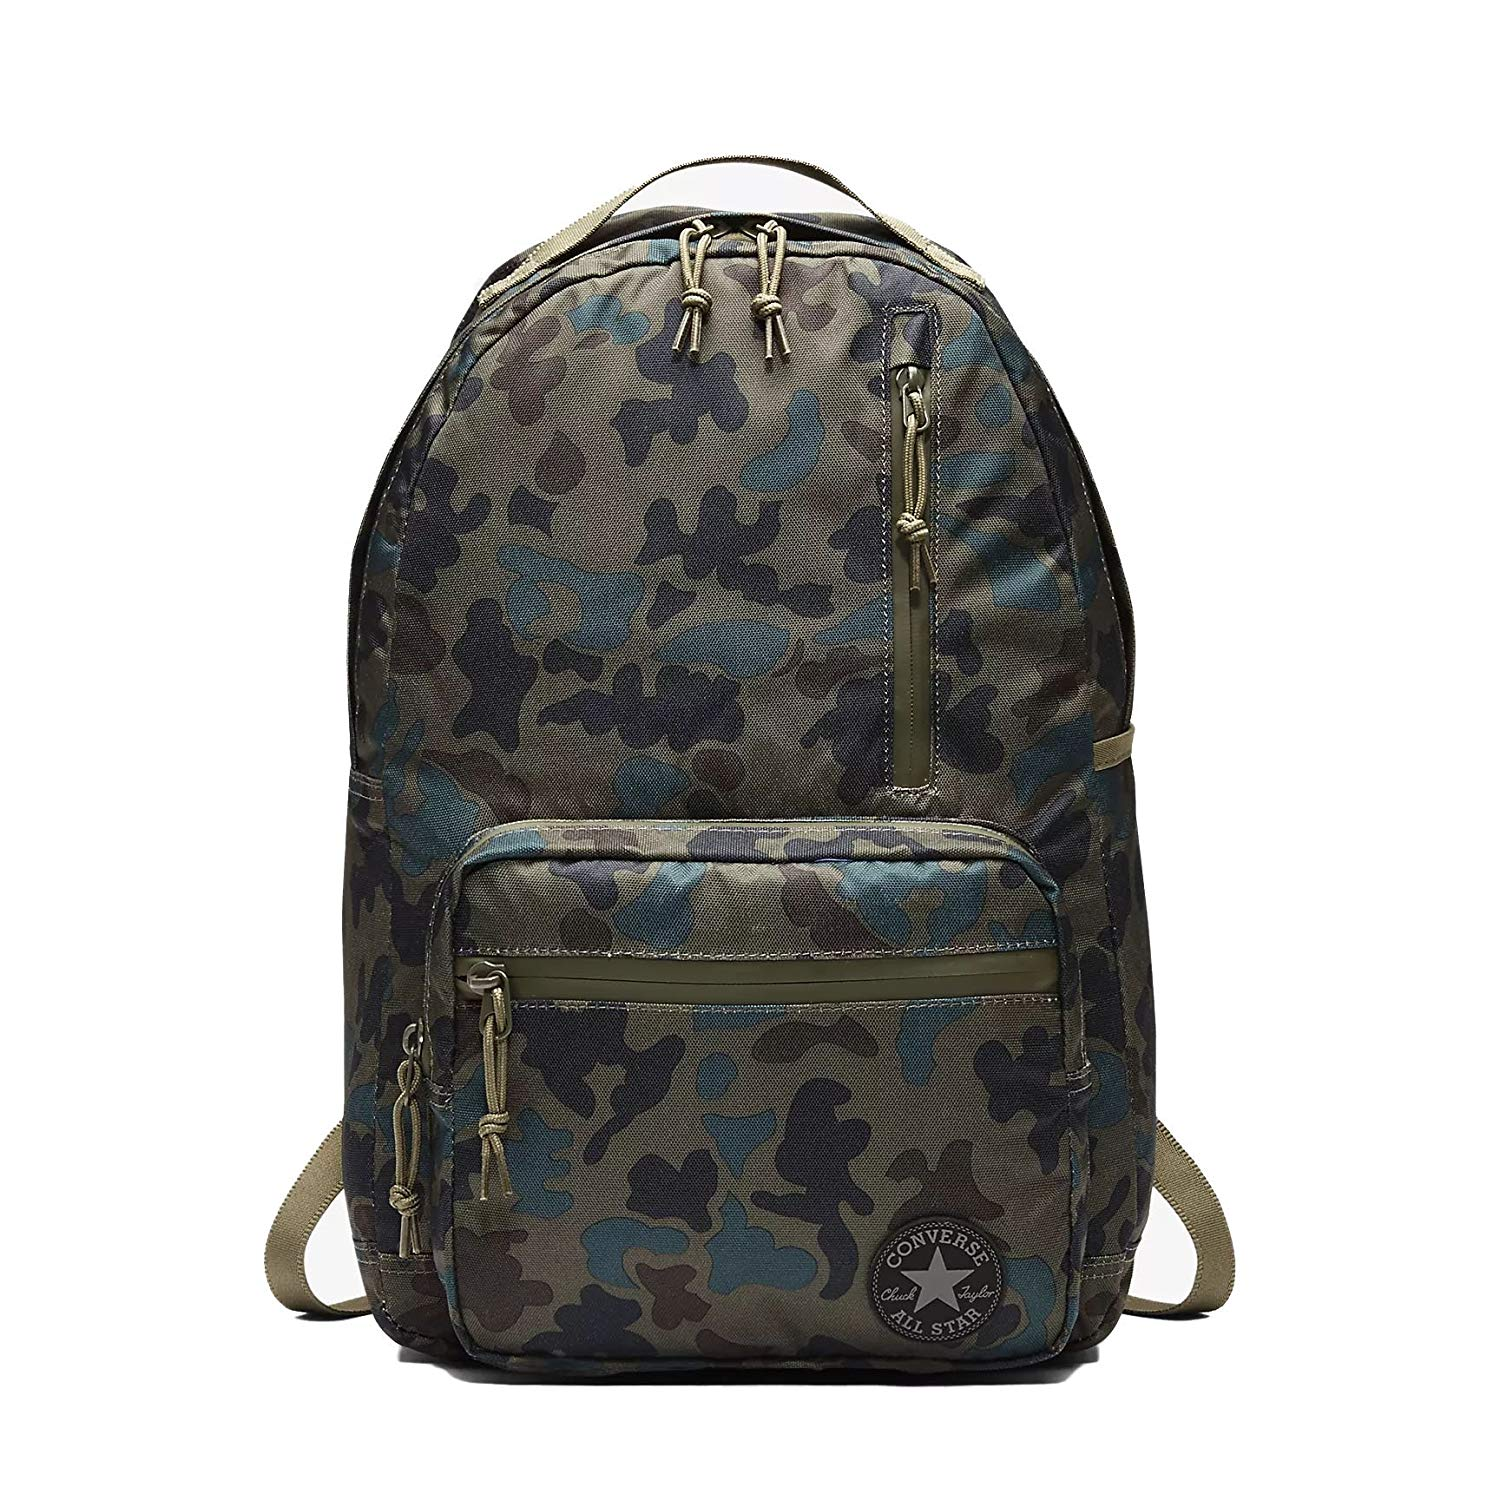 Converse Chuck Taylor All Star Go Backpack 2.0 One Size (Camo ... ab3e169d651f5